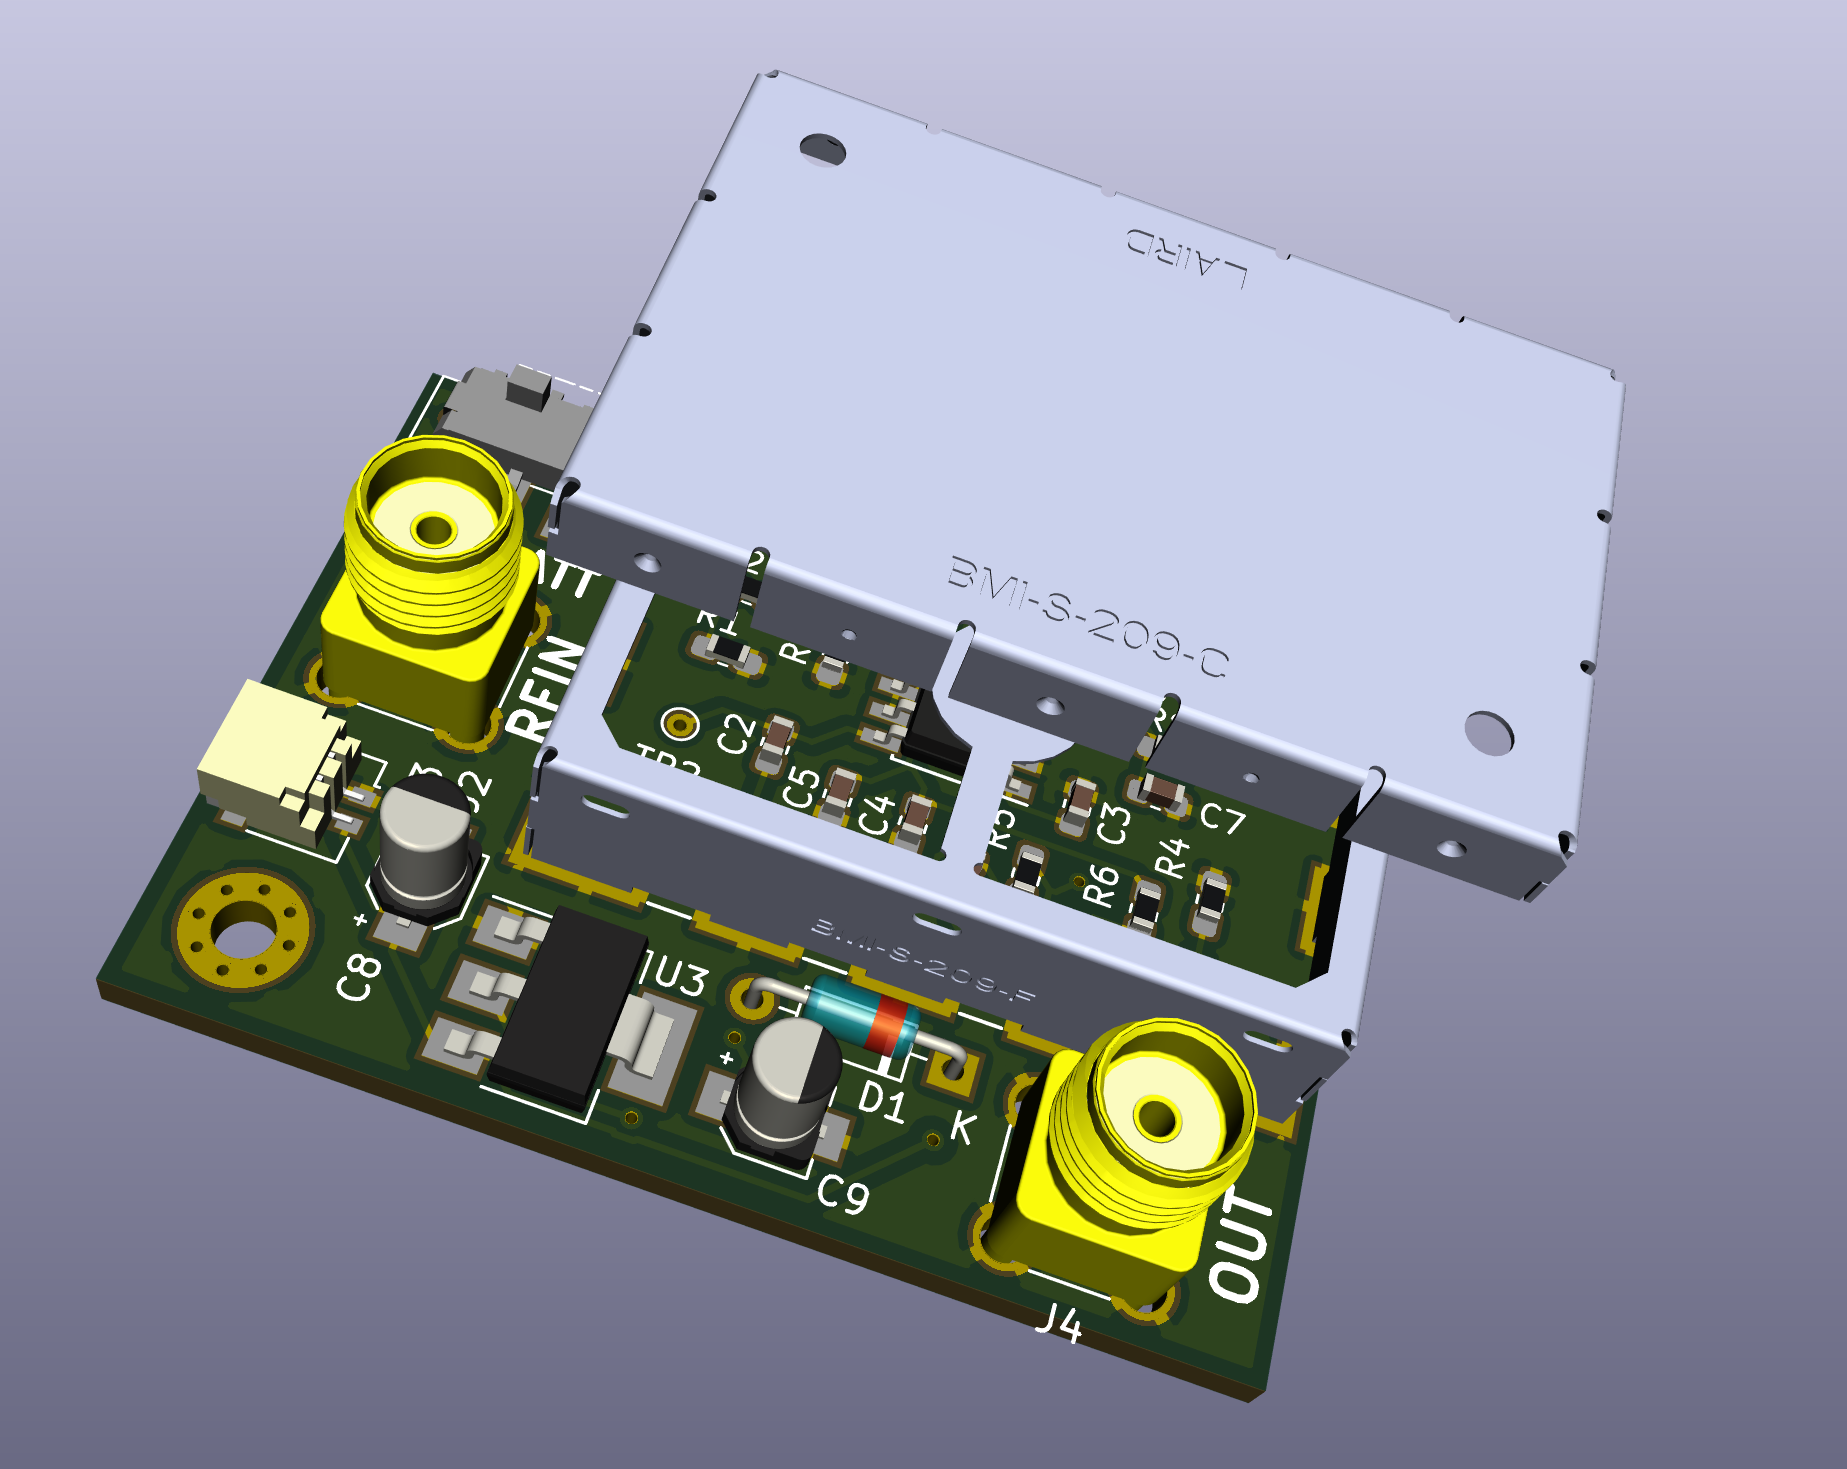 AD8307 RF Power Meter | Alauda Projects